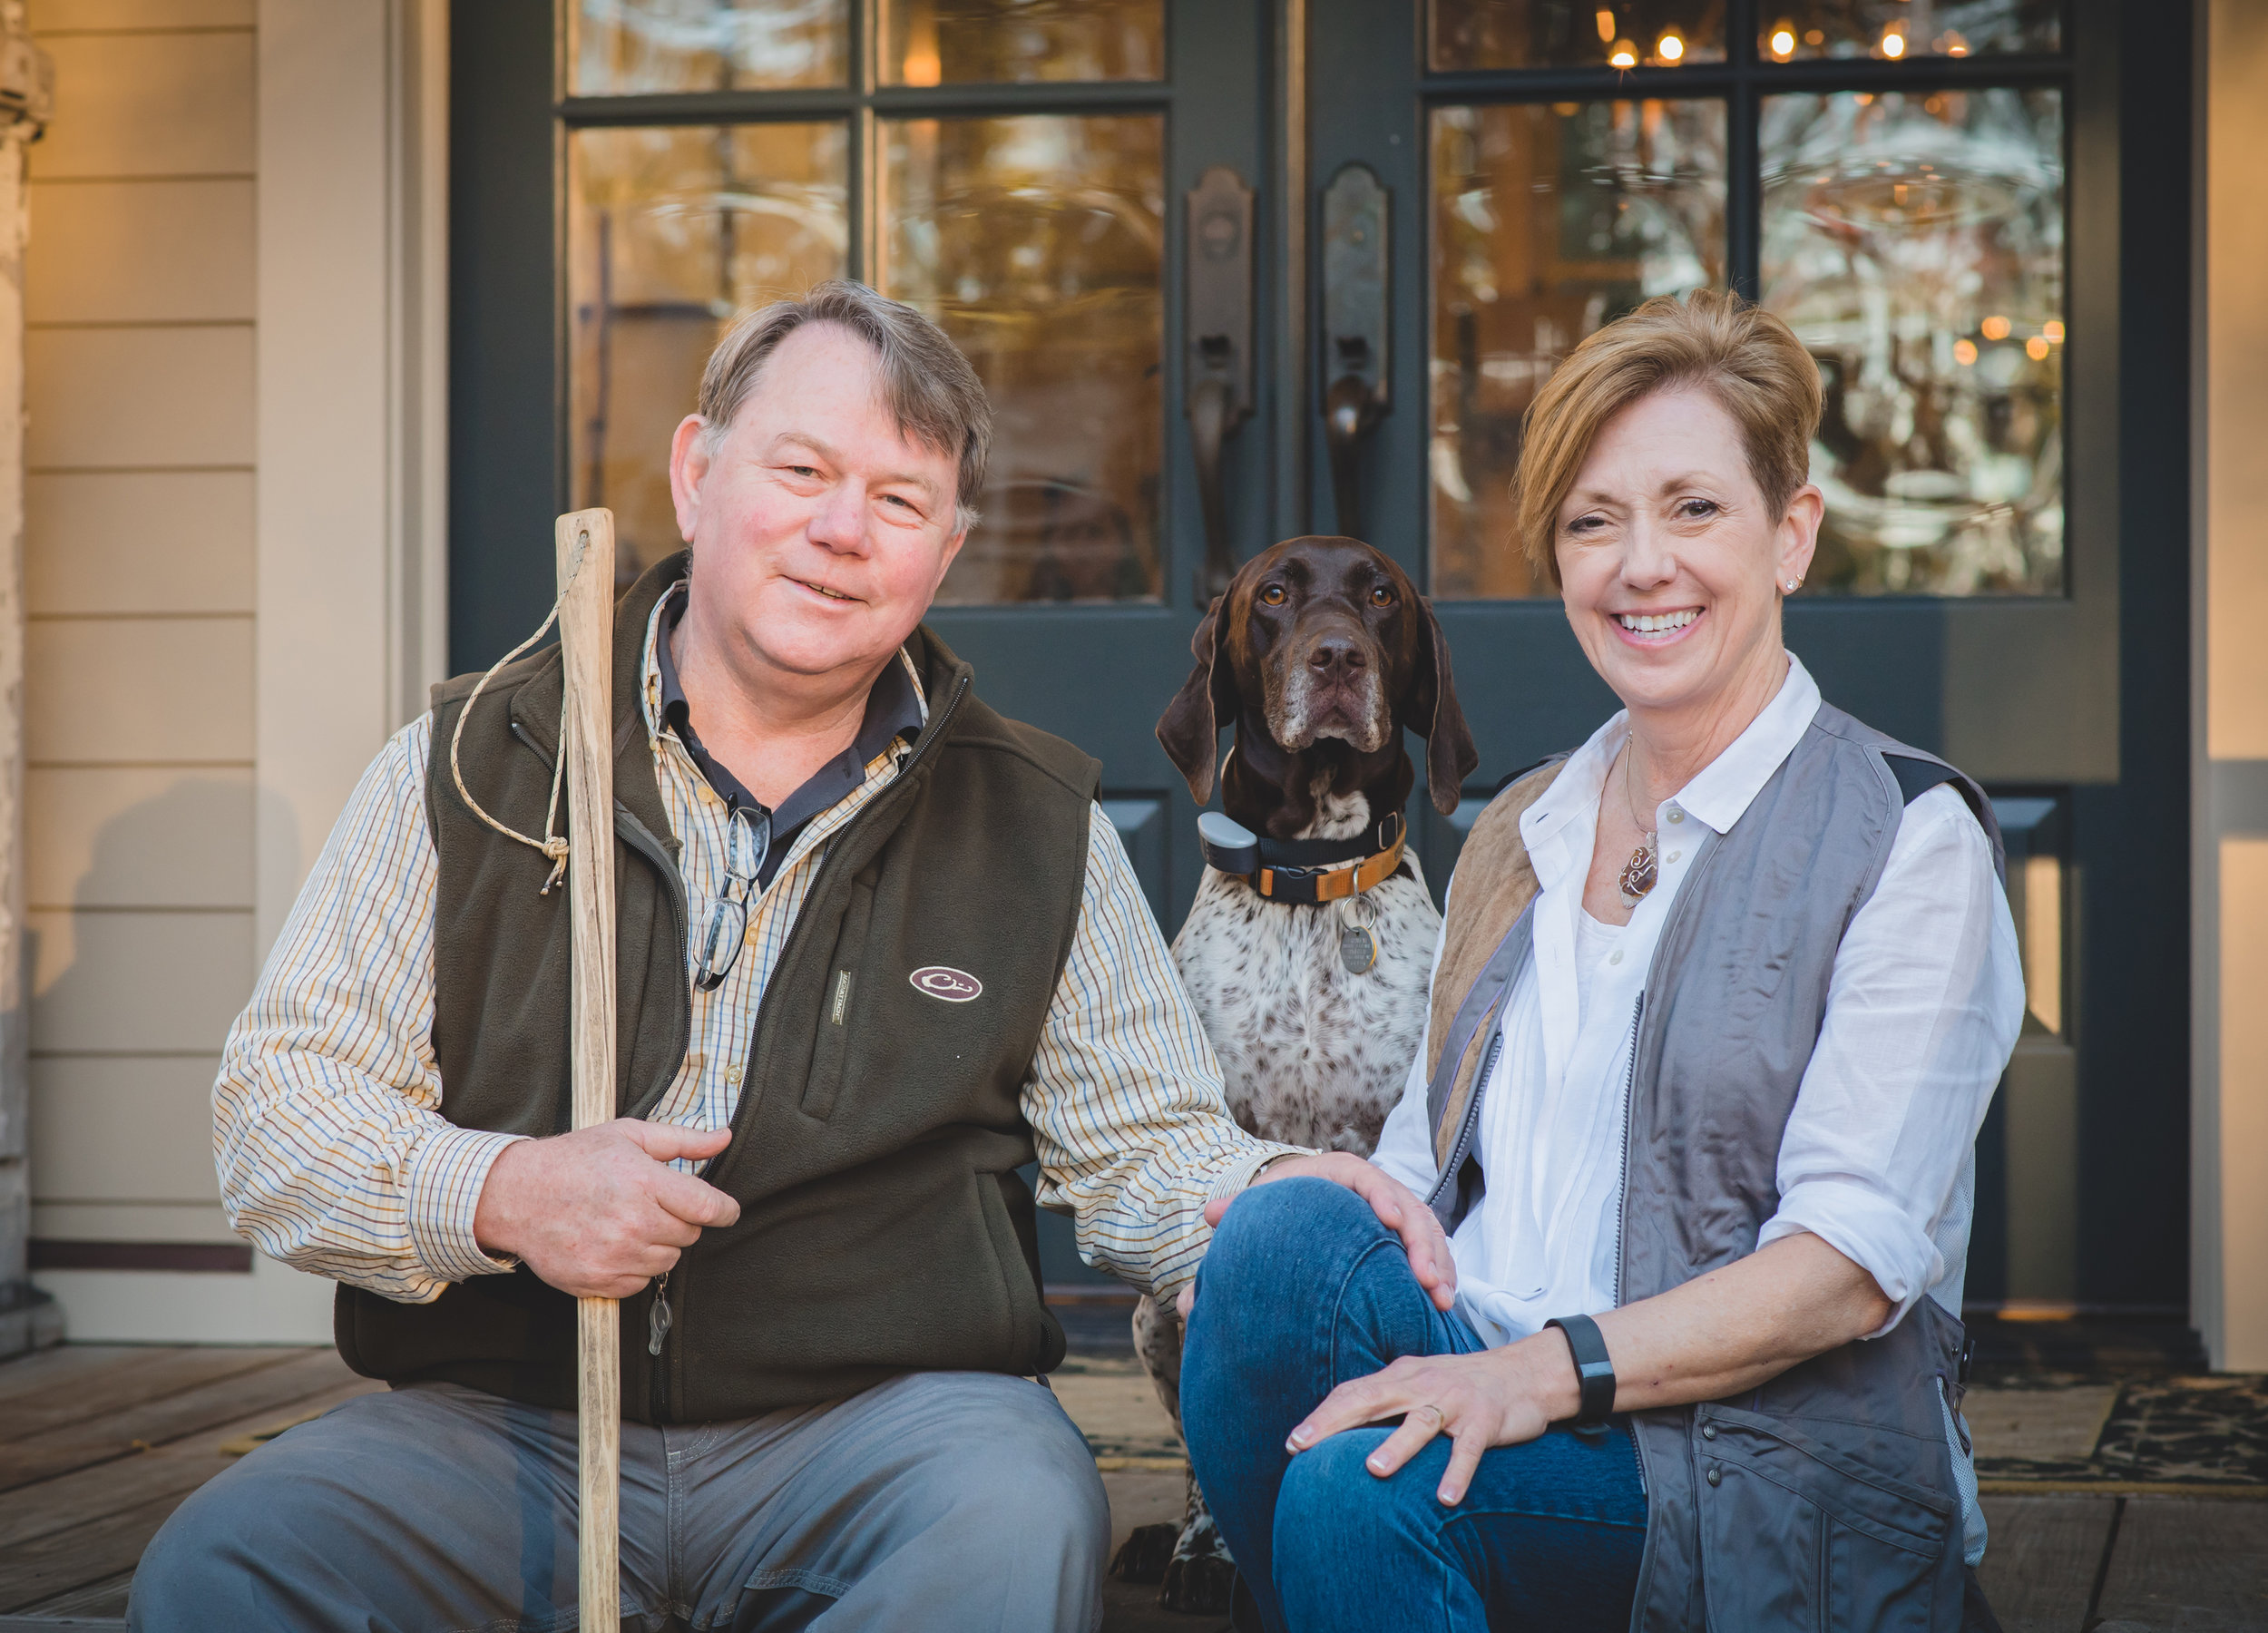 My husband Al and I with our dog Olive.